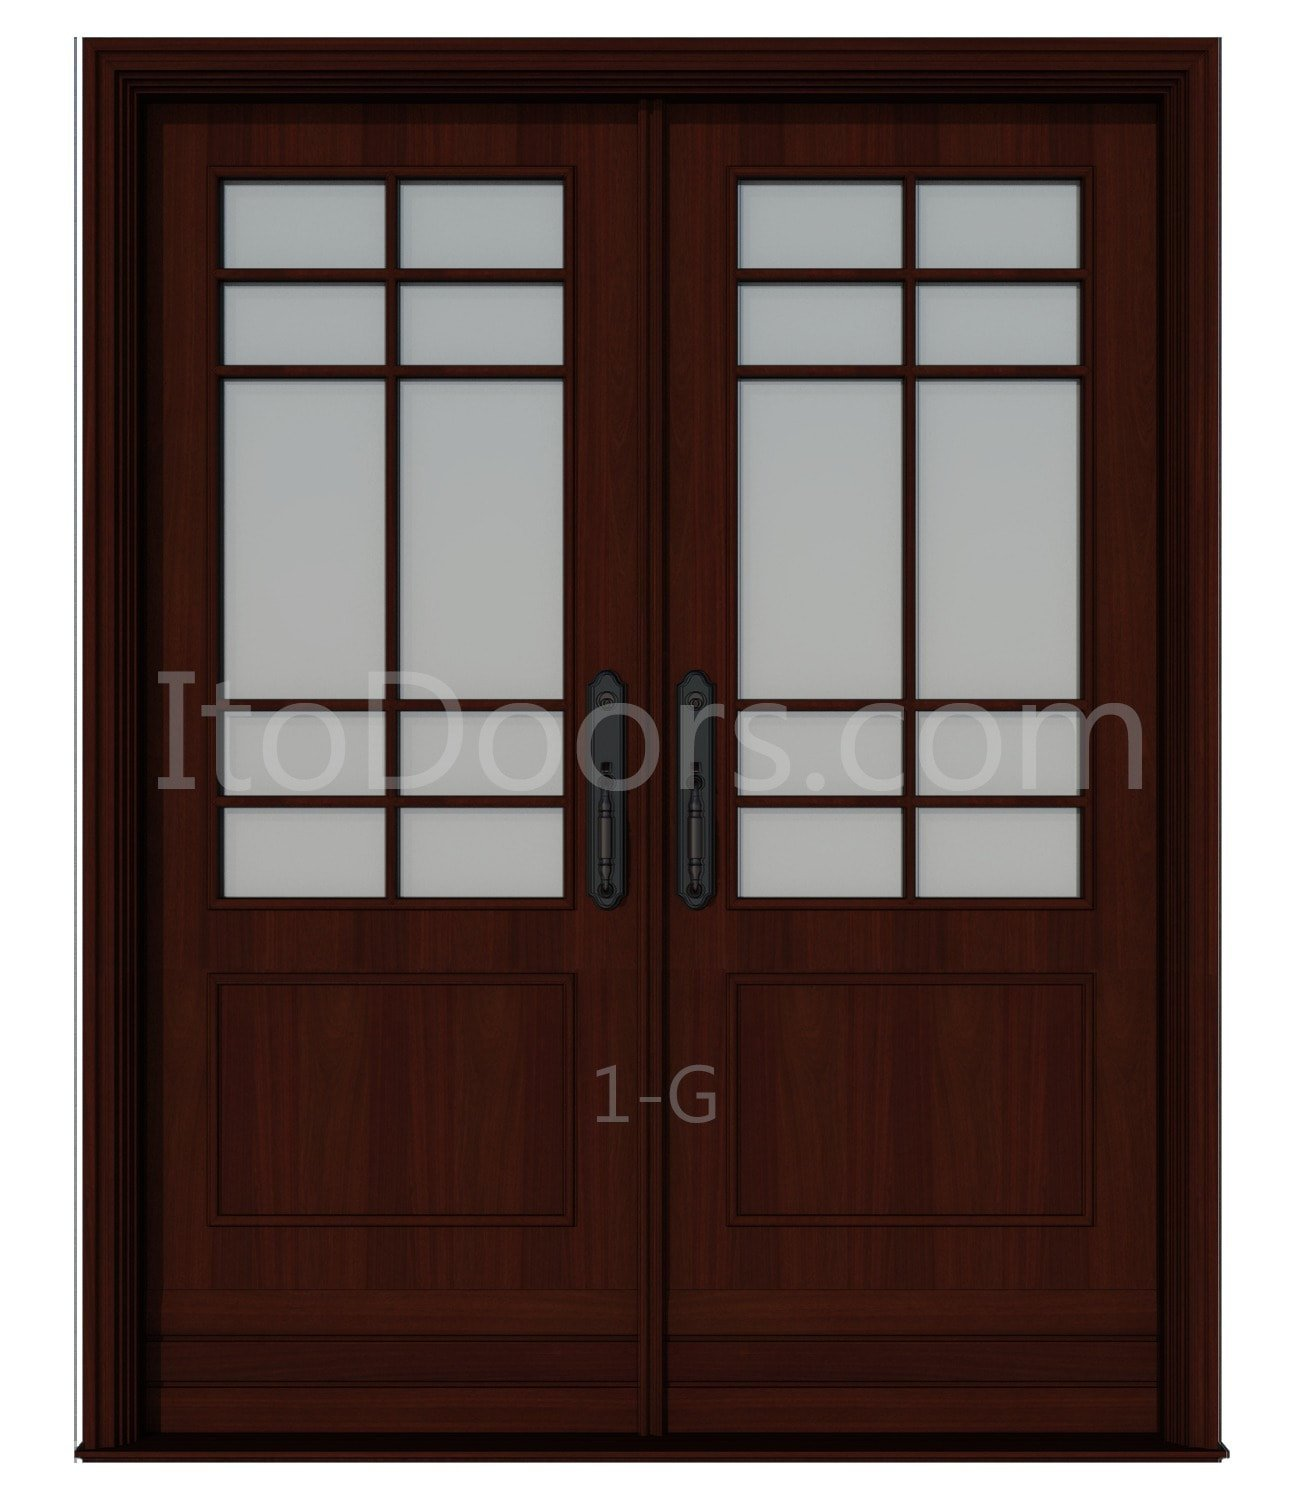 Get quotations · custom made double exterior front entry double wooden glass door ito doors